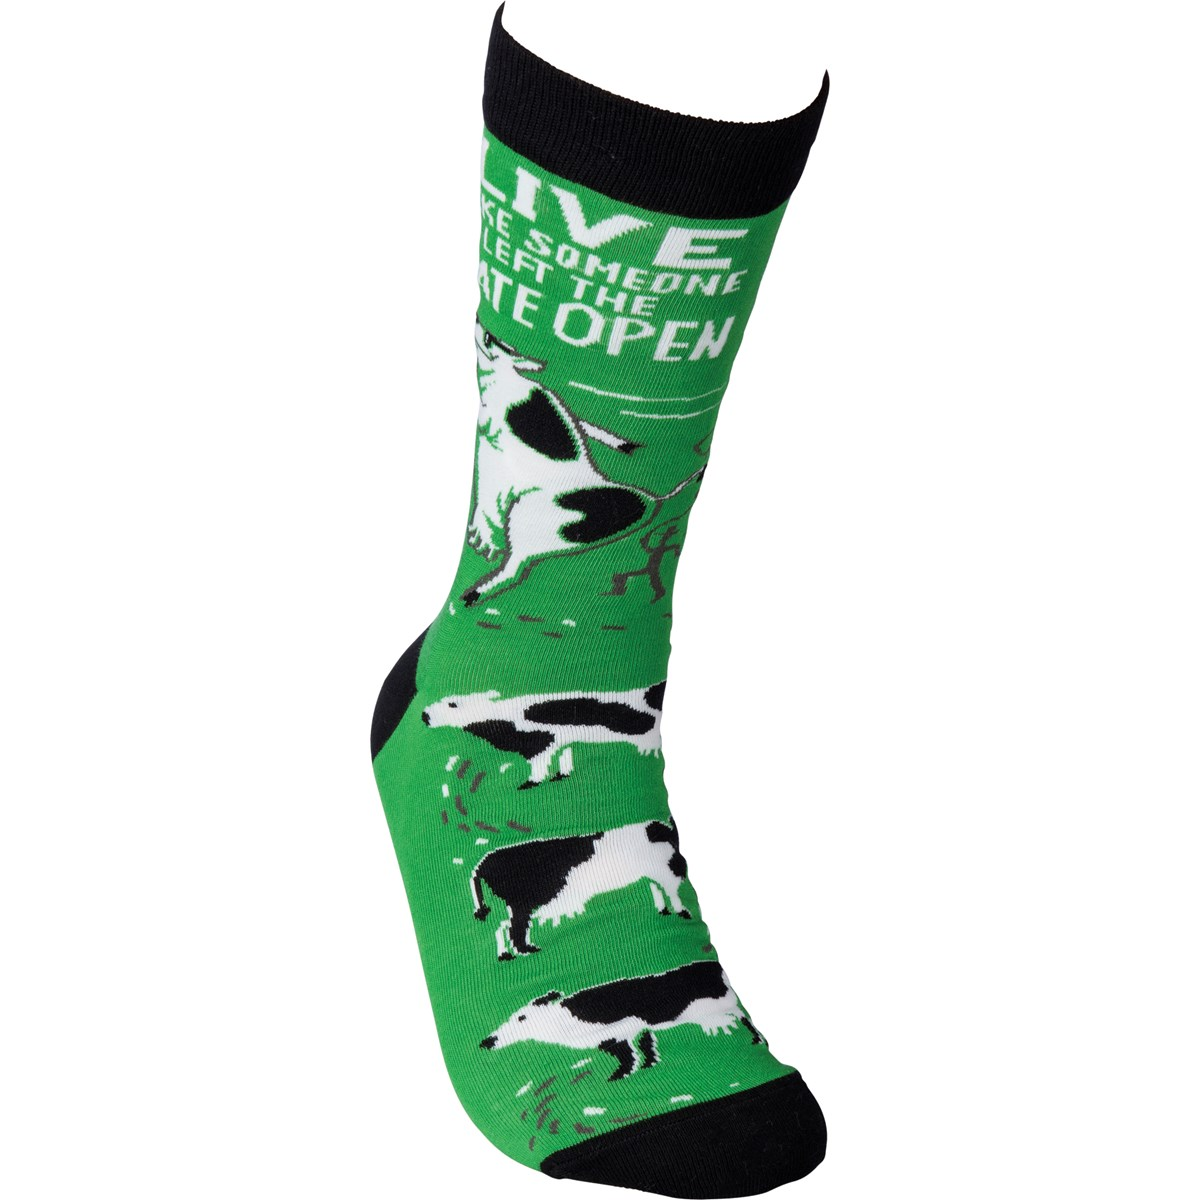 Socks - Live Like Someone Left The Gate Open - One Size Fits Most - Cotton, Nylon, Spandex